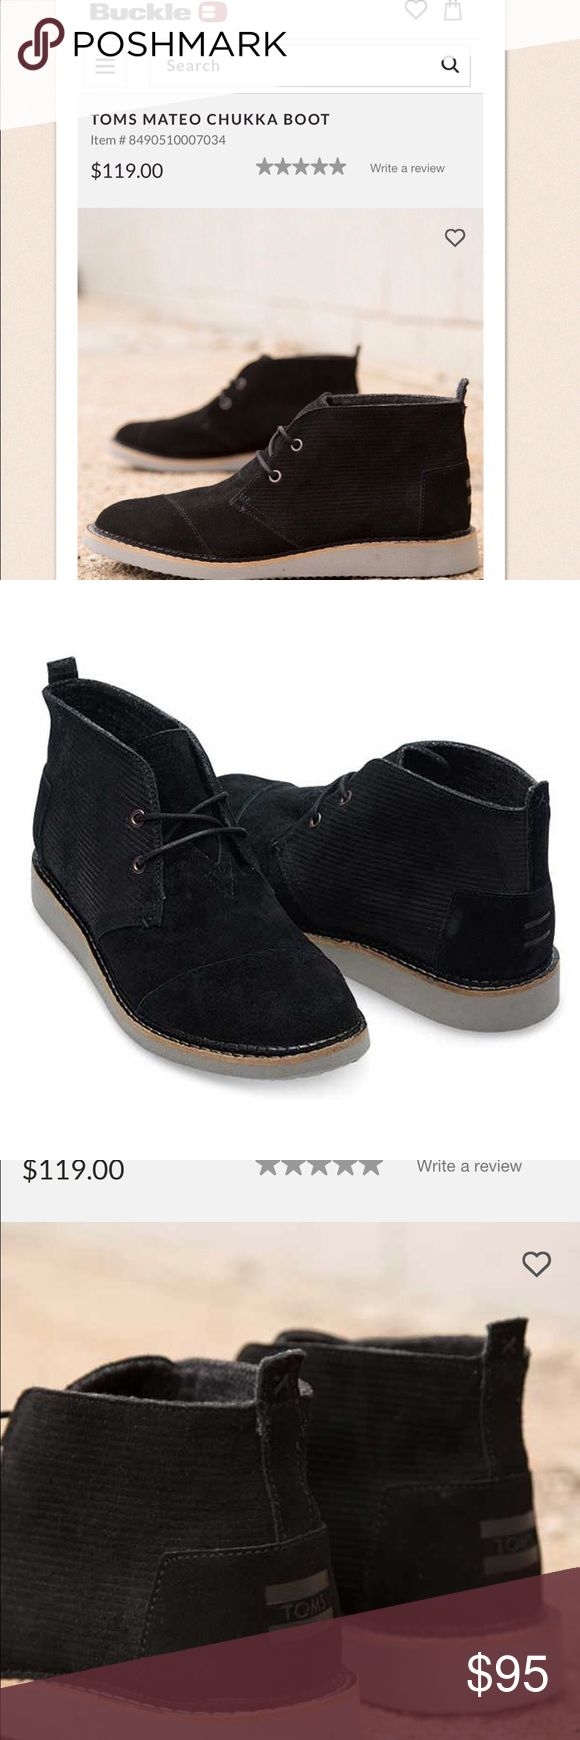 NWT!!!❤ Men's Black Suede TOMS Mateo Chukka Boot! NWT! Currently selling on Buckle for $119. Men's TOMS Mateo Chukka Boot size 9 with genuine black suede upper and EVA midsole and outsole. New and never worn. Come without the box. Super stylish! ❤️ TOMS Shoes Chukka Boots